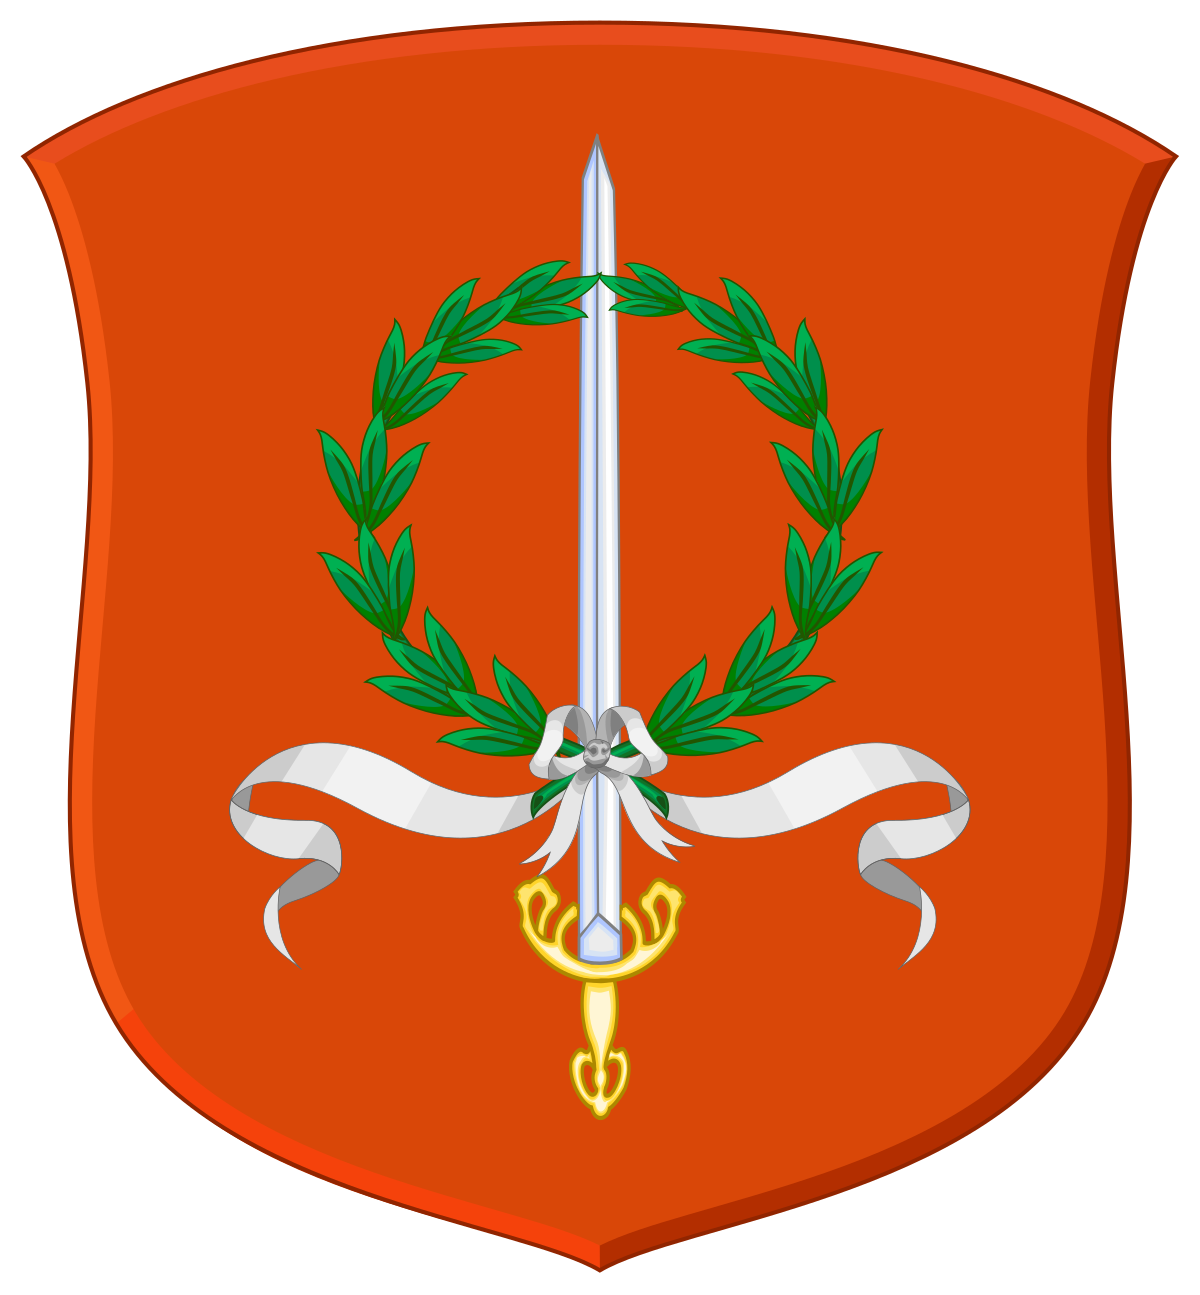 1200px-Coat_of_Arms_of_Batavia_(1930_-_shield).svg.png